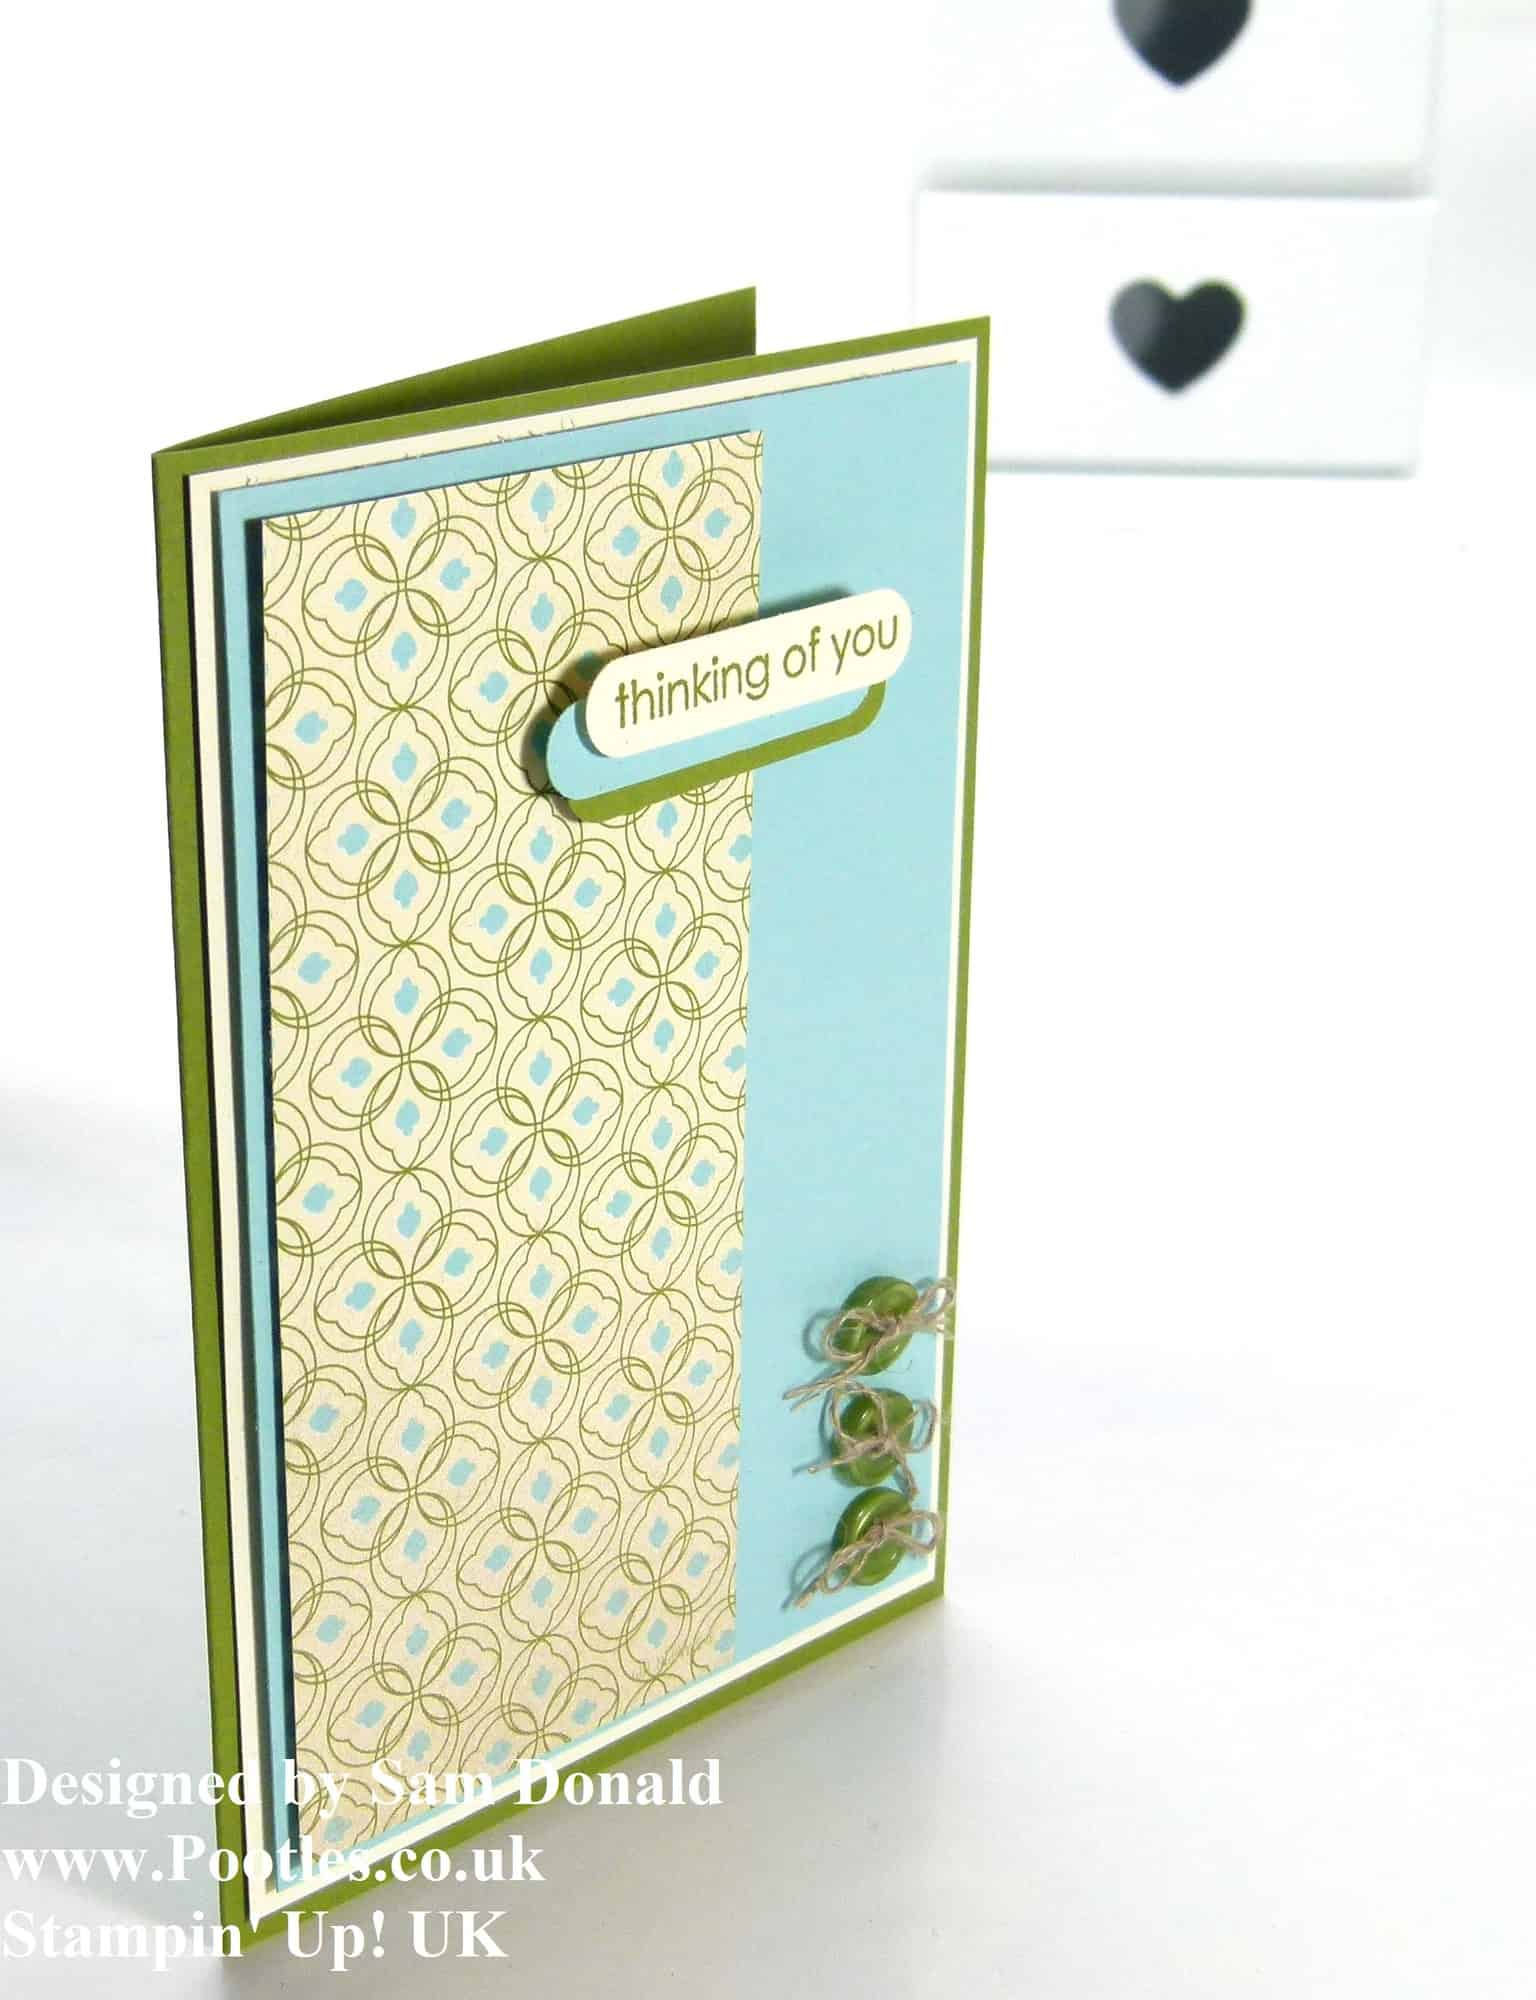 POOTLES Stampin Up UK Embellished Etcetera 3